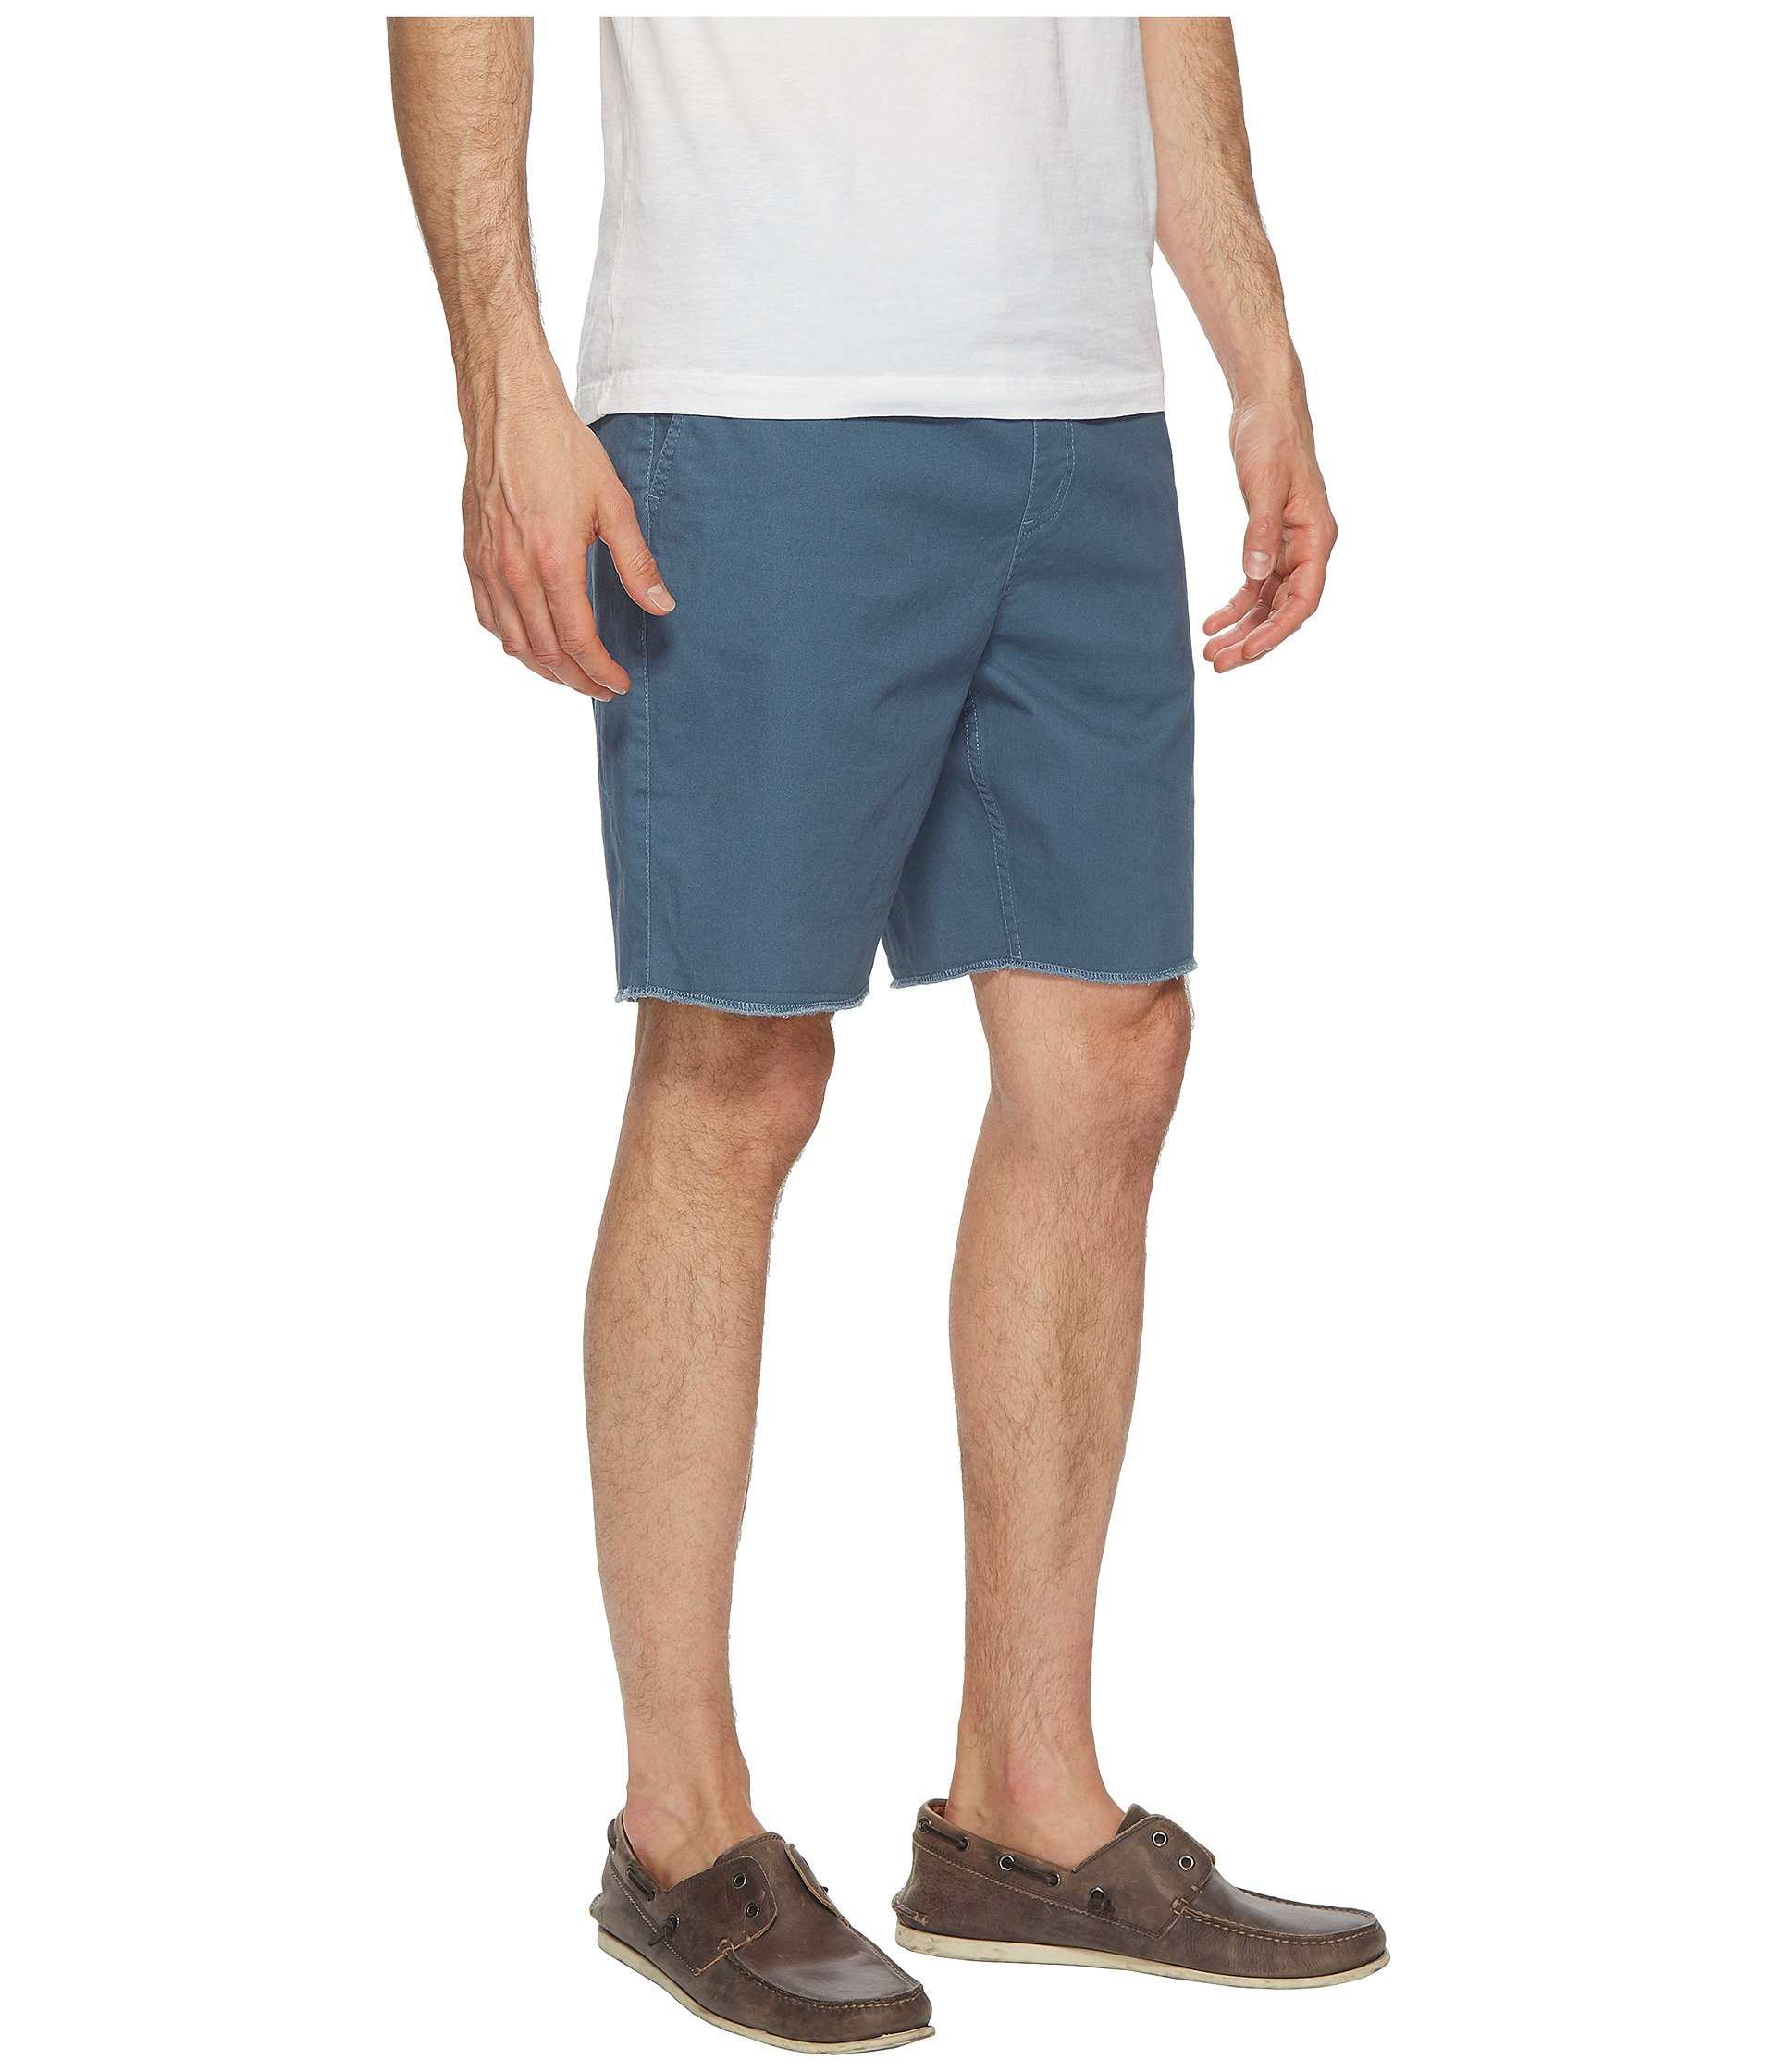 Blue Shorts Dusty Blue Dusty Brixton Madrid Brixton Shorts Brixton Madrid Blue Brixton Madrid Shorts Dusty Madrid wfBg6qxZ